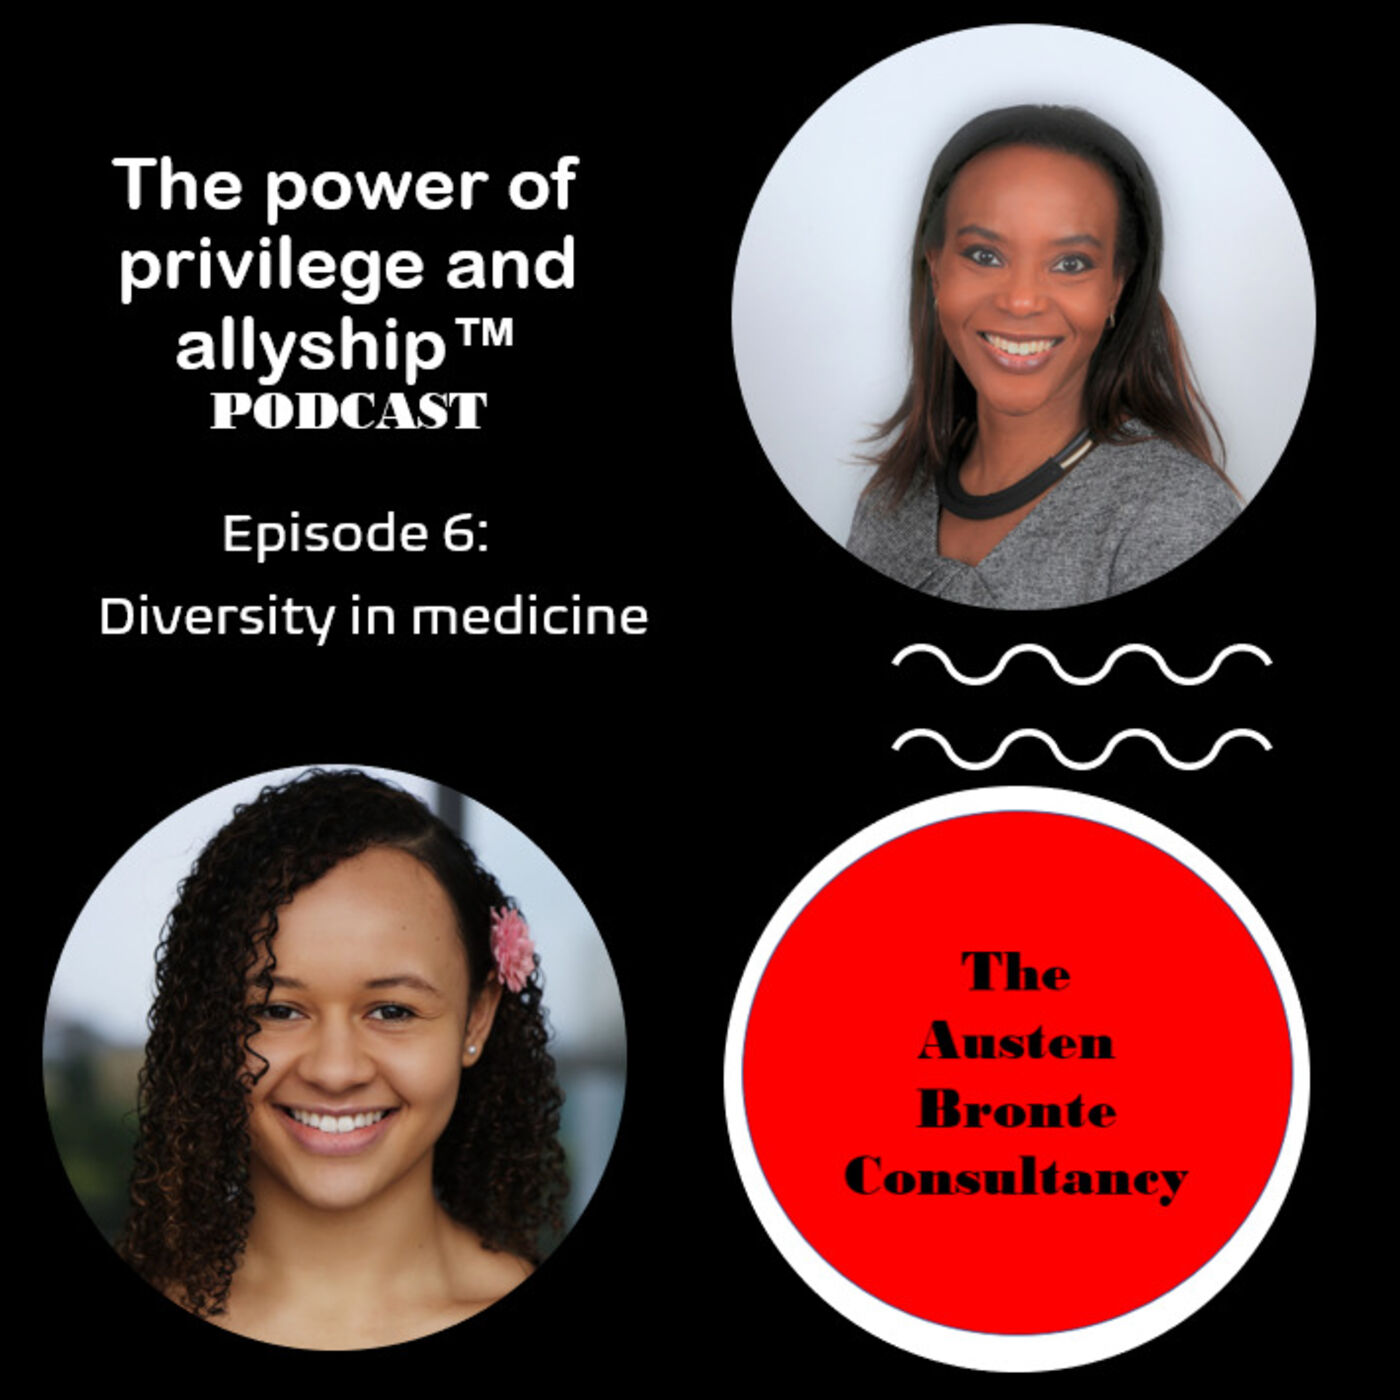 S1 Ep 6: Diversity in medicine feat. Dr. Leanne Armitage